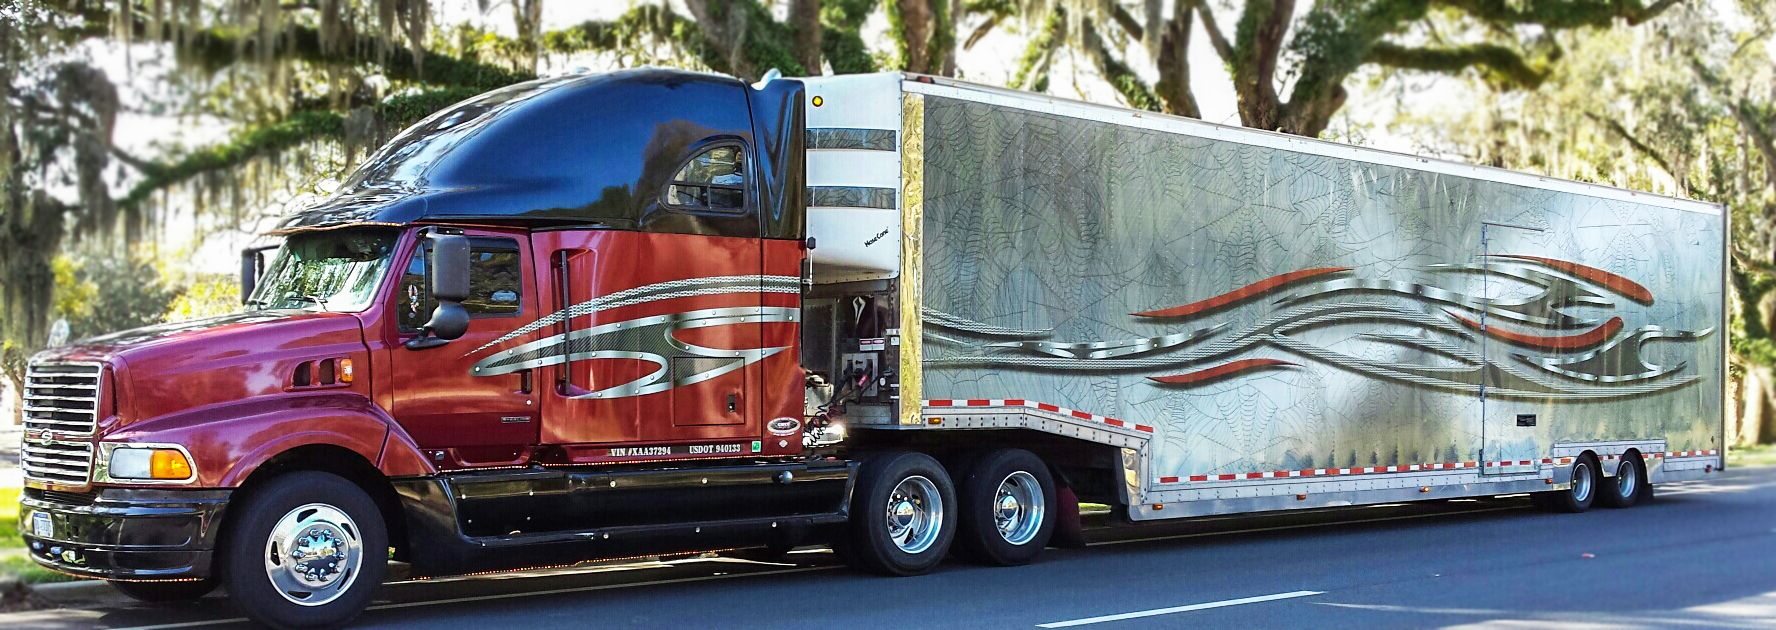 Zilla wraps in north fort worth provides top quality commercial vehicle wraps services choose zilla wraps for your commercial vehicle wrap project